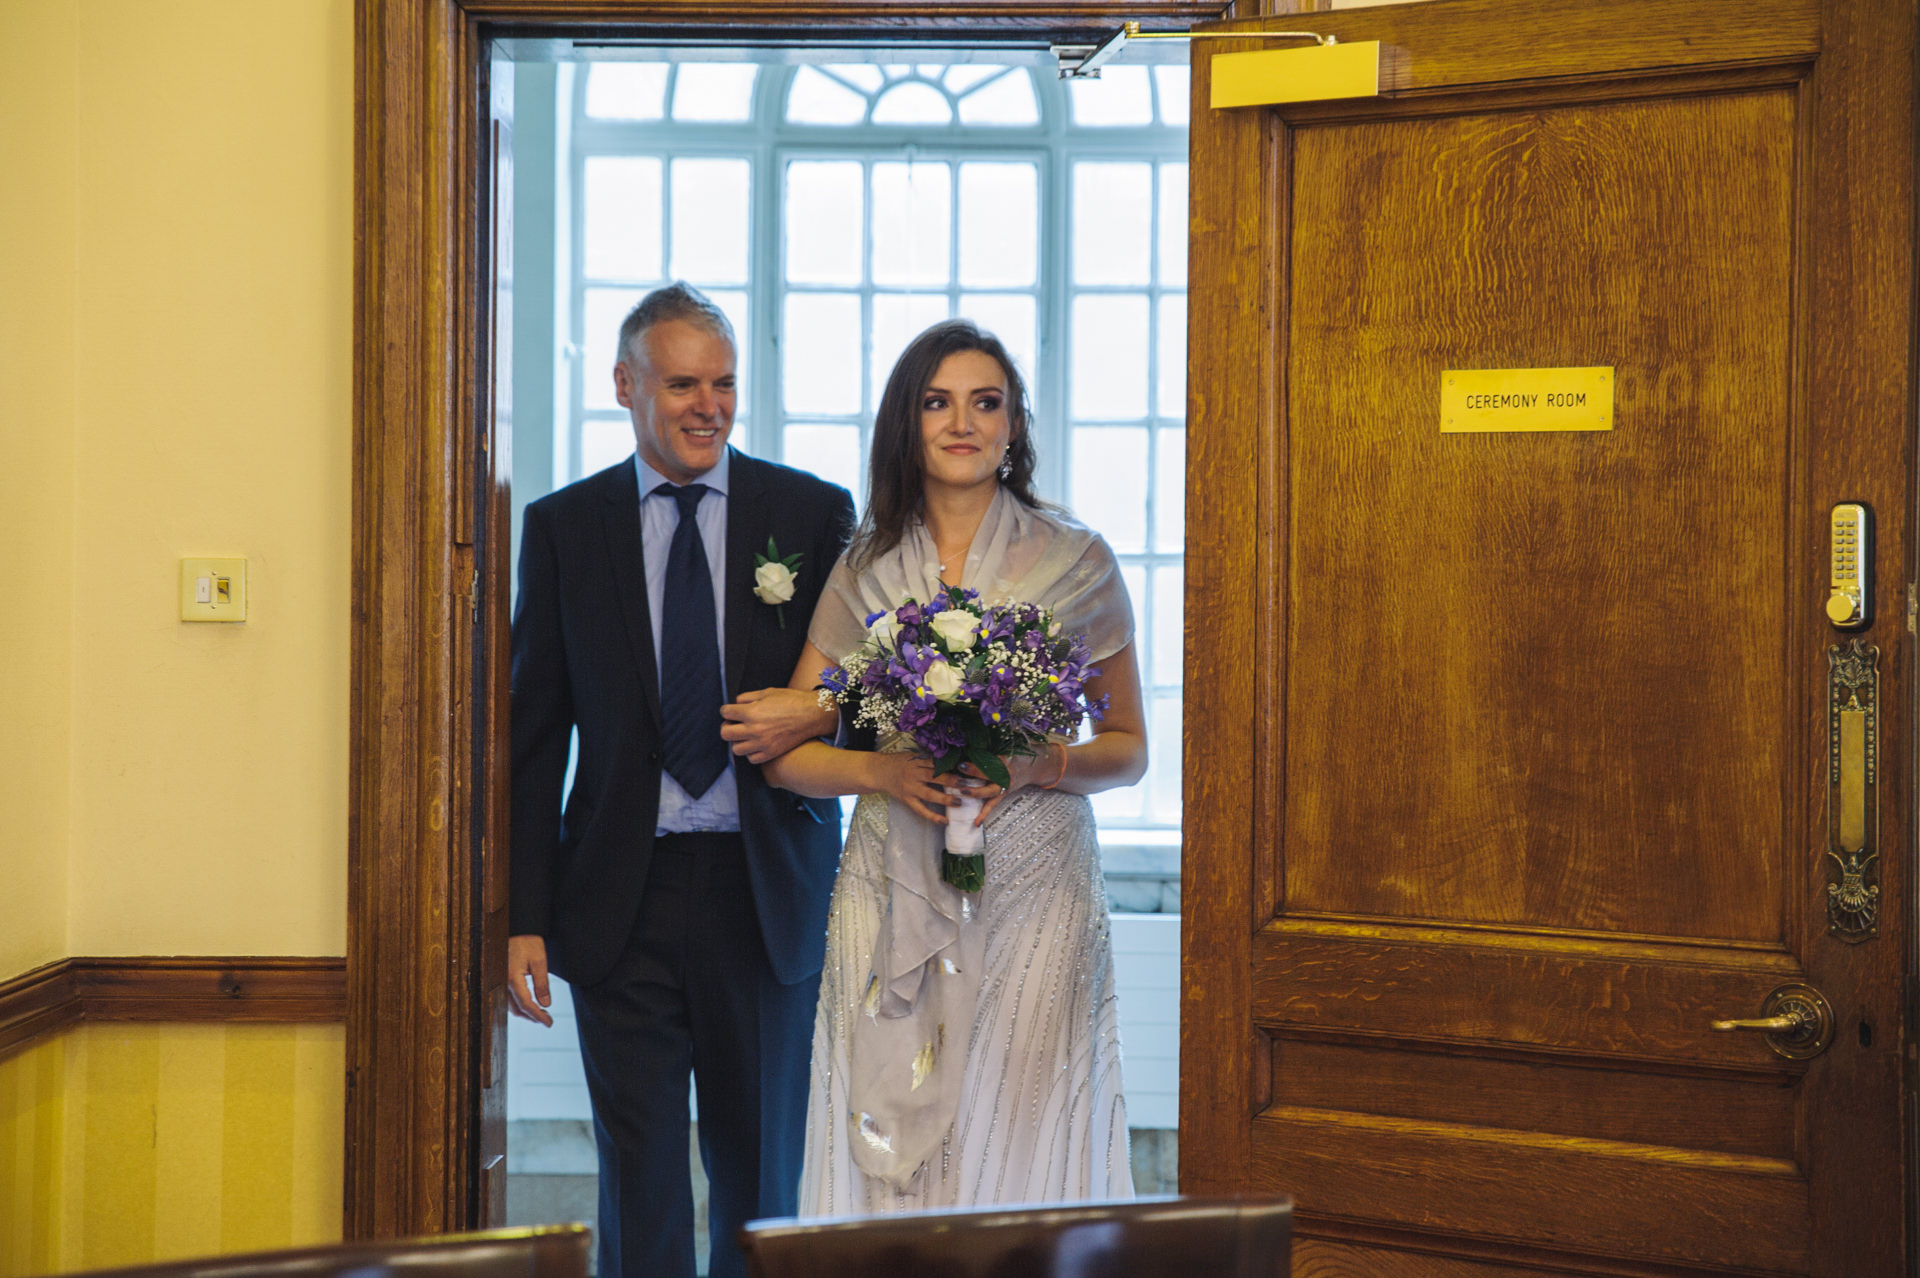 islington town hall wedding bride and her father